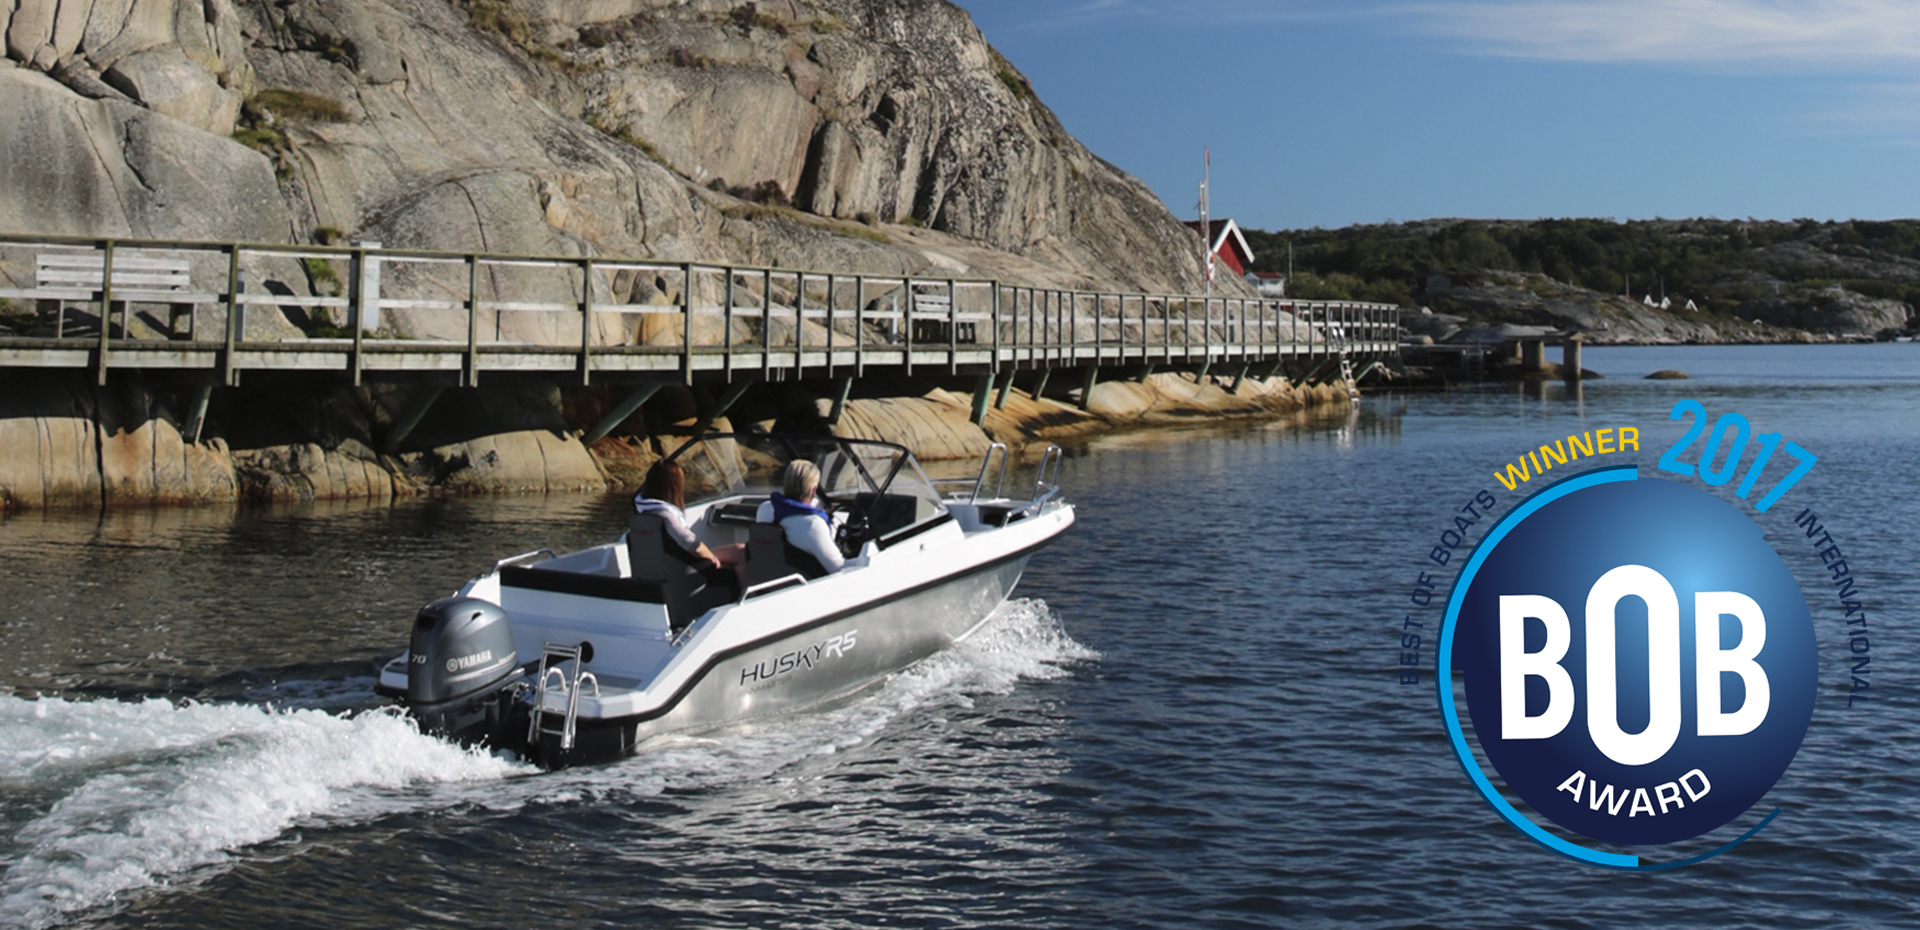 Aluminium Boat Finnmaster Husky R5 Best of Boats 2017 WINNER.